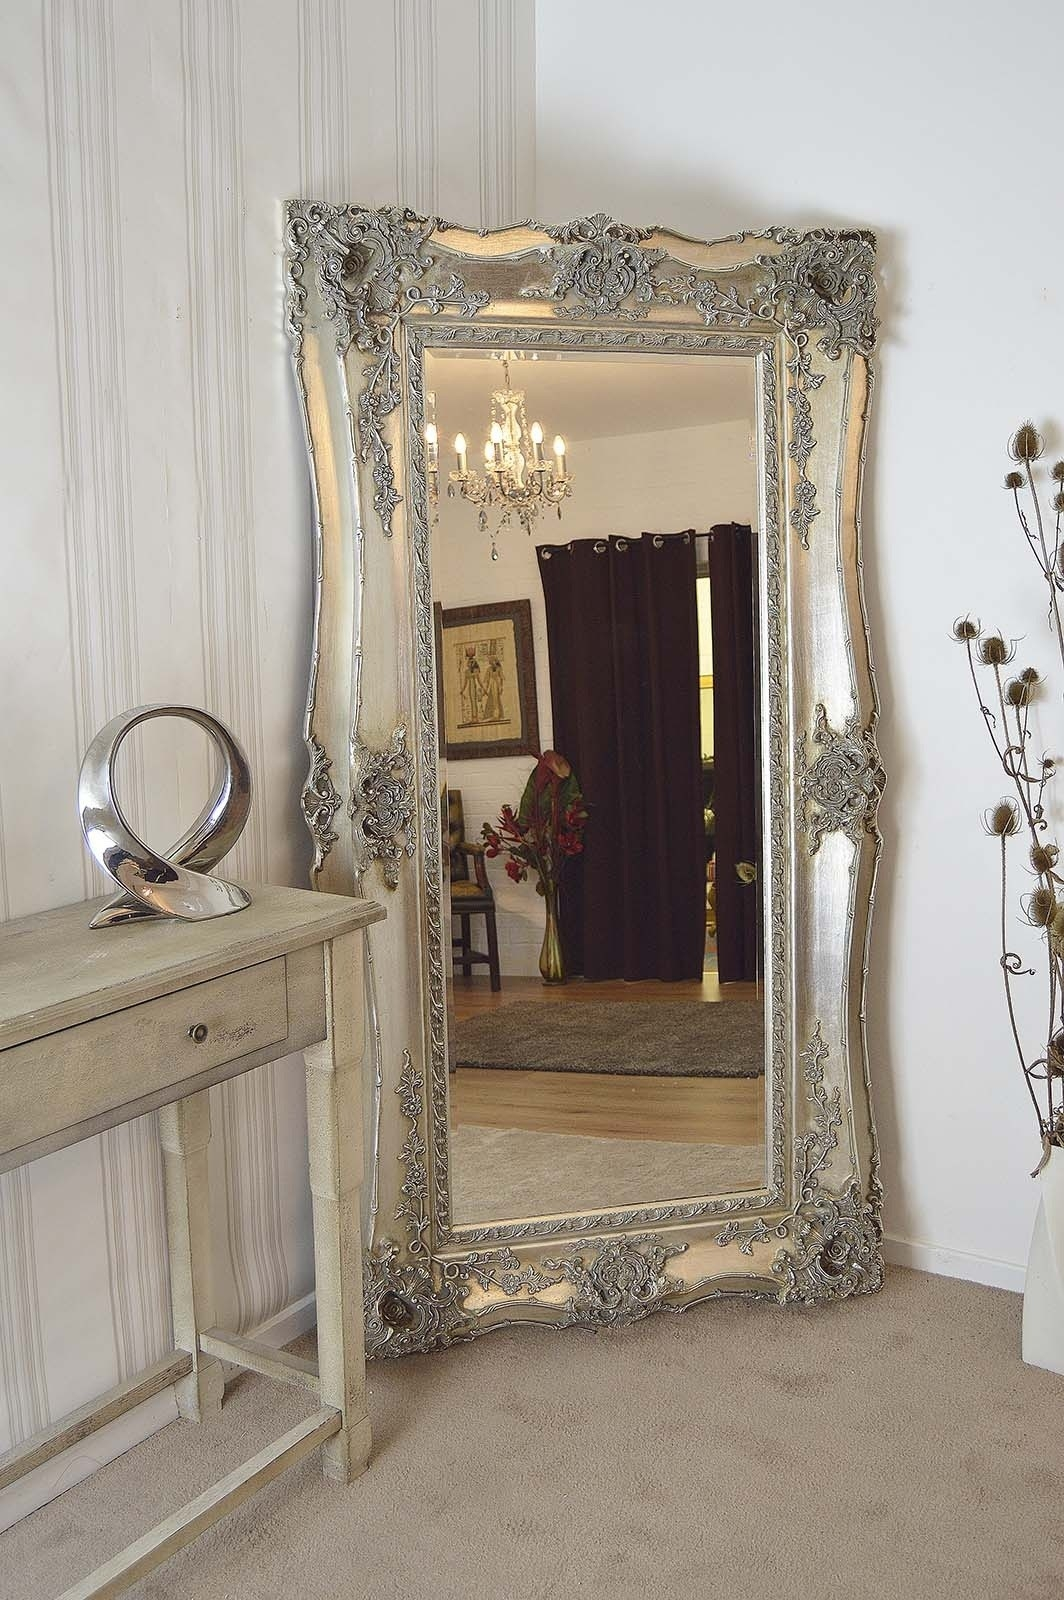 Bedroom Furniture Large Gold Mirror Free Standing Mirror Wooden Inside Free Standing Silver Mirror (Image 6 of 15)